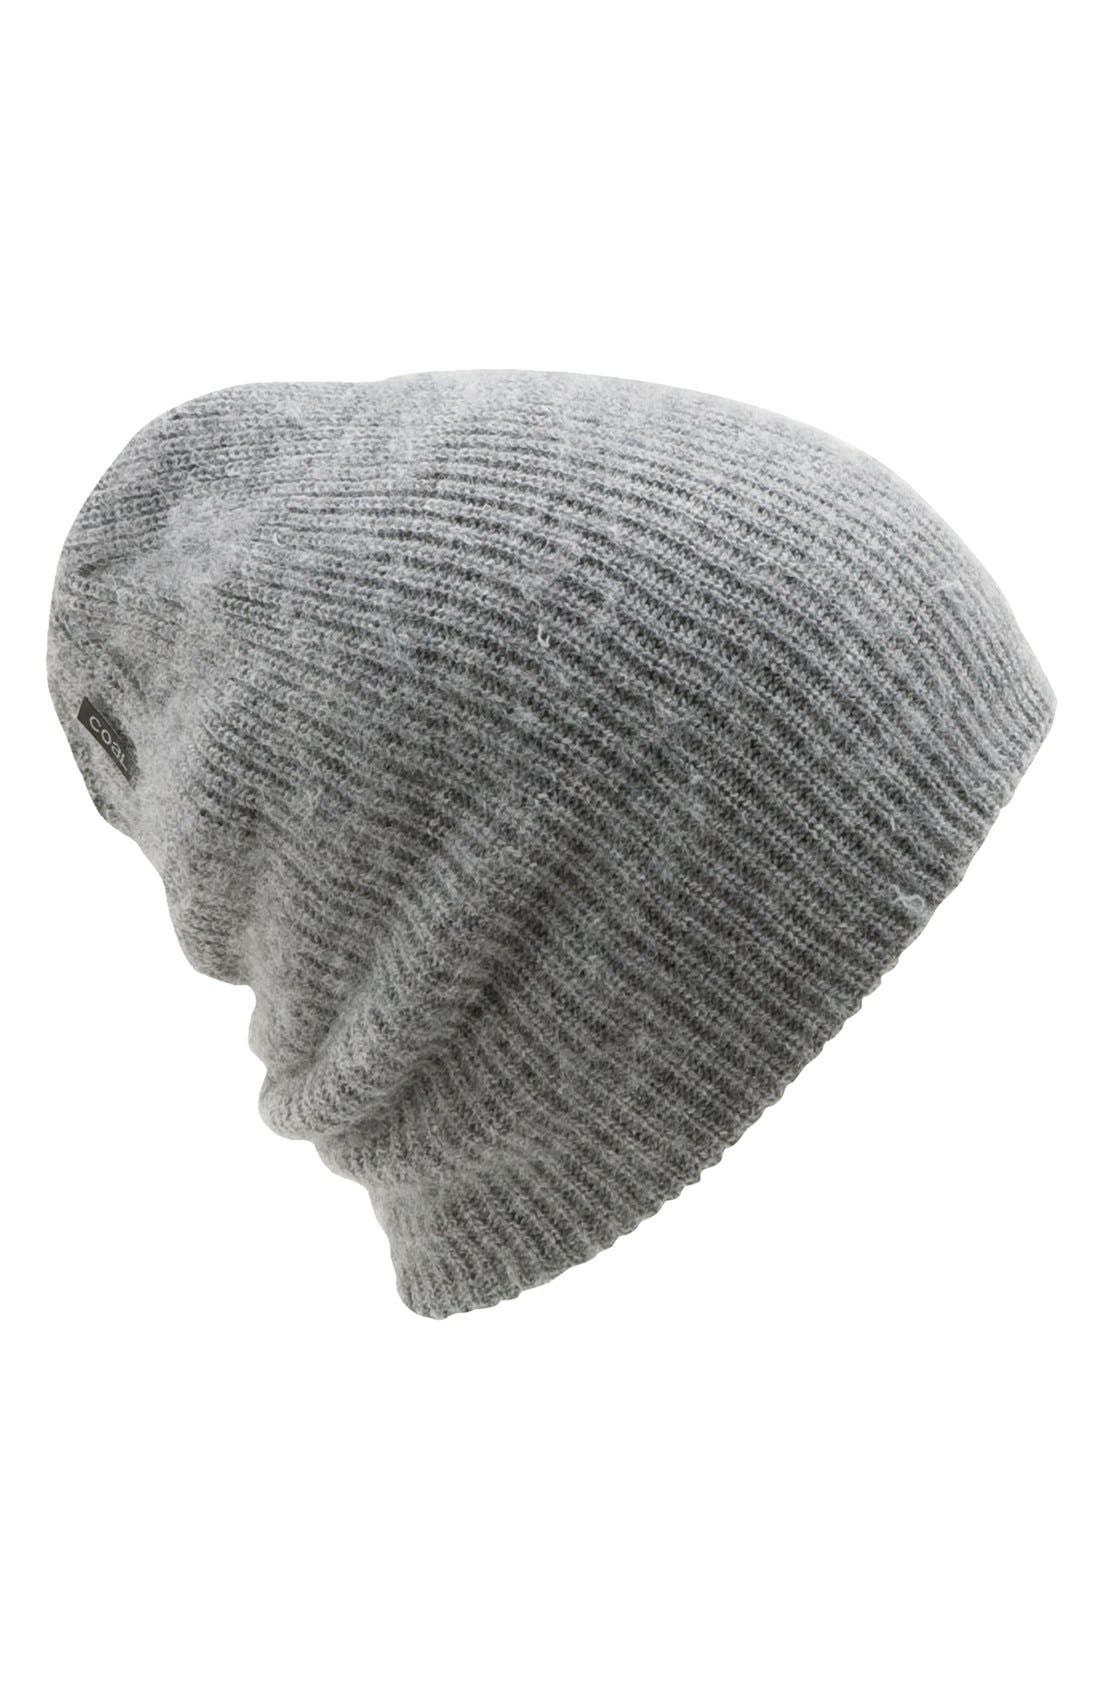 Main Image - Coal 'The Scotty' Slouchy Beanie